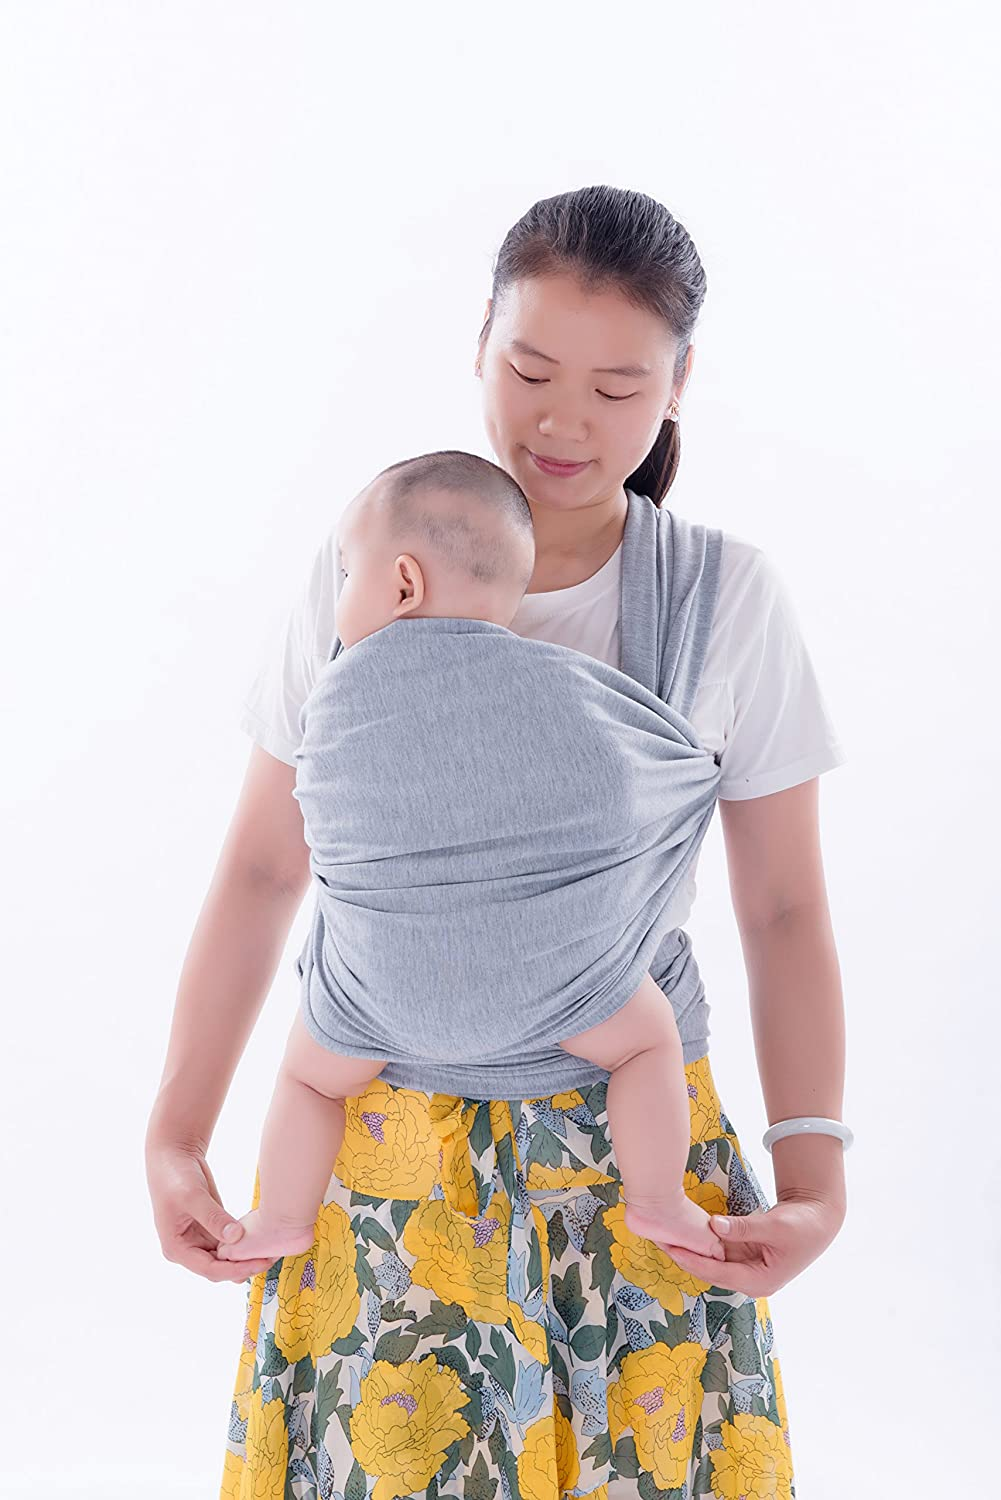 Soft and Comfortable Emwel Baby Wrap Carrier Adjustable Breastfeeding Cover Cotton Sling Baby Carrier for Infants up to 35 lbs//16kg